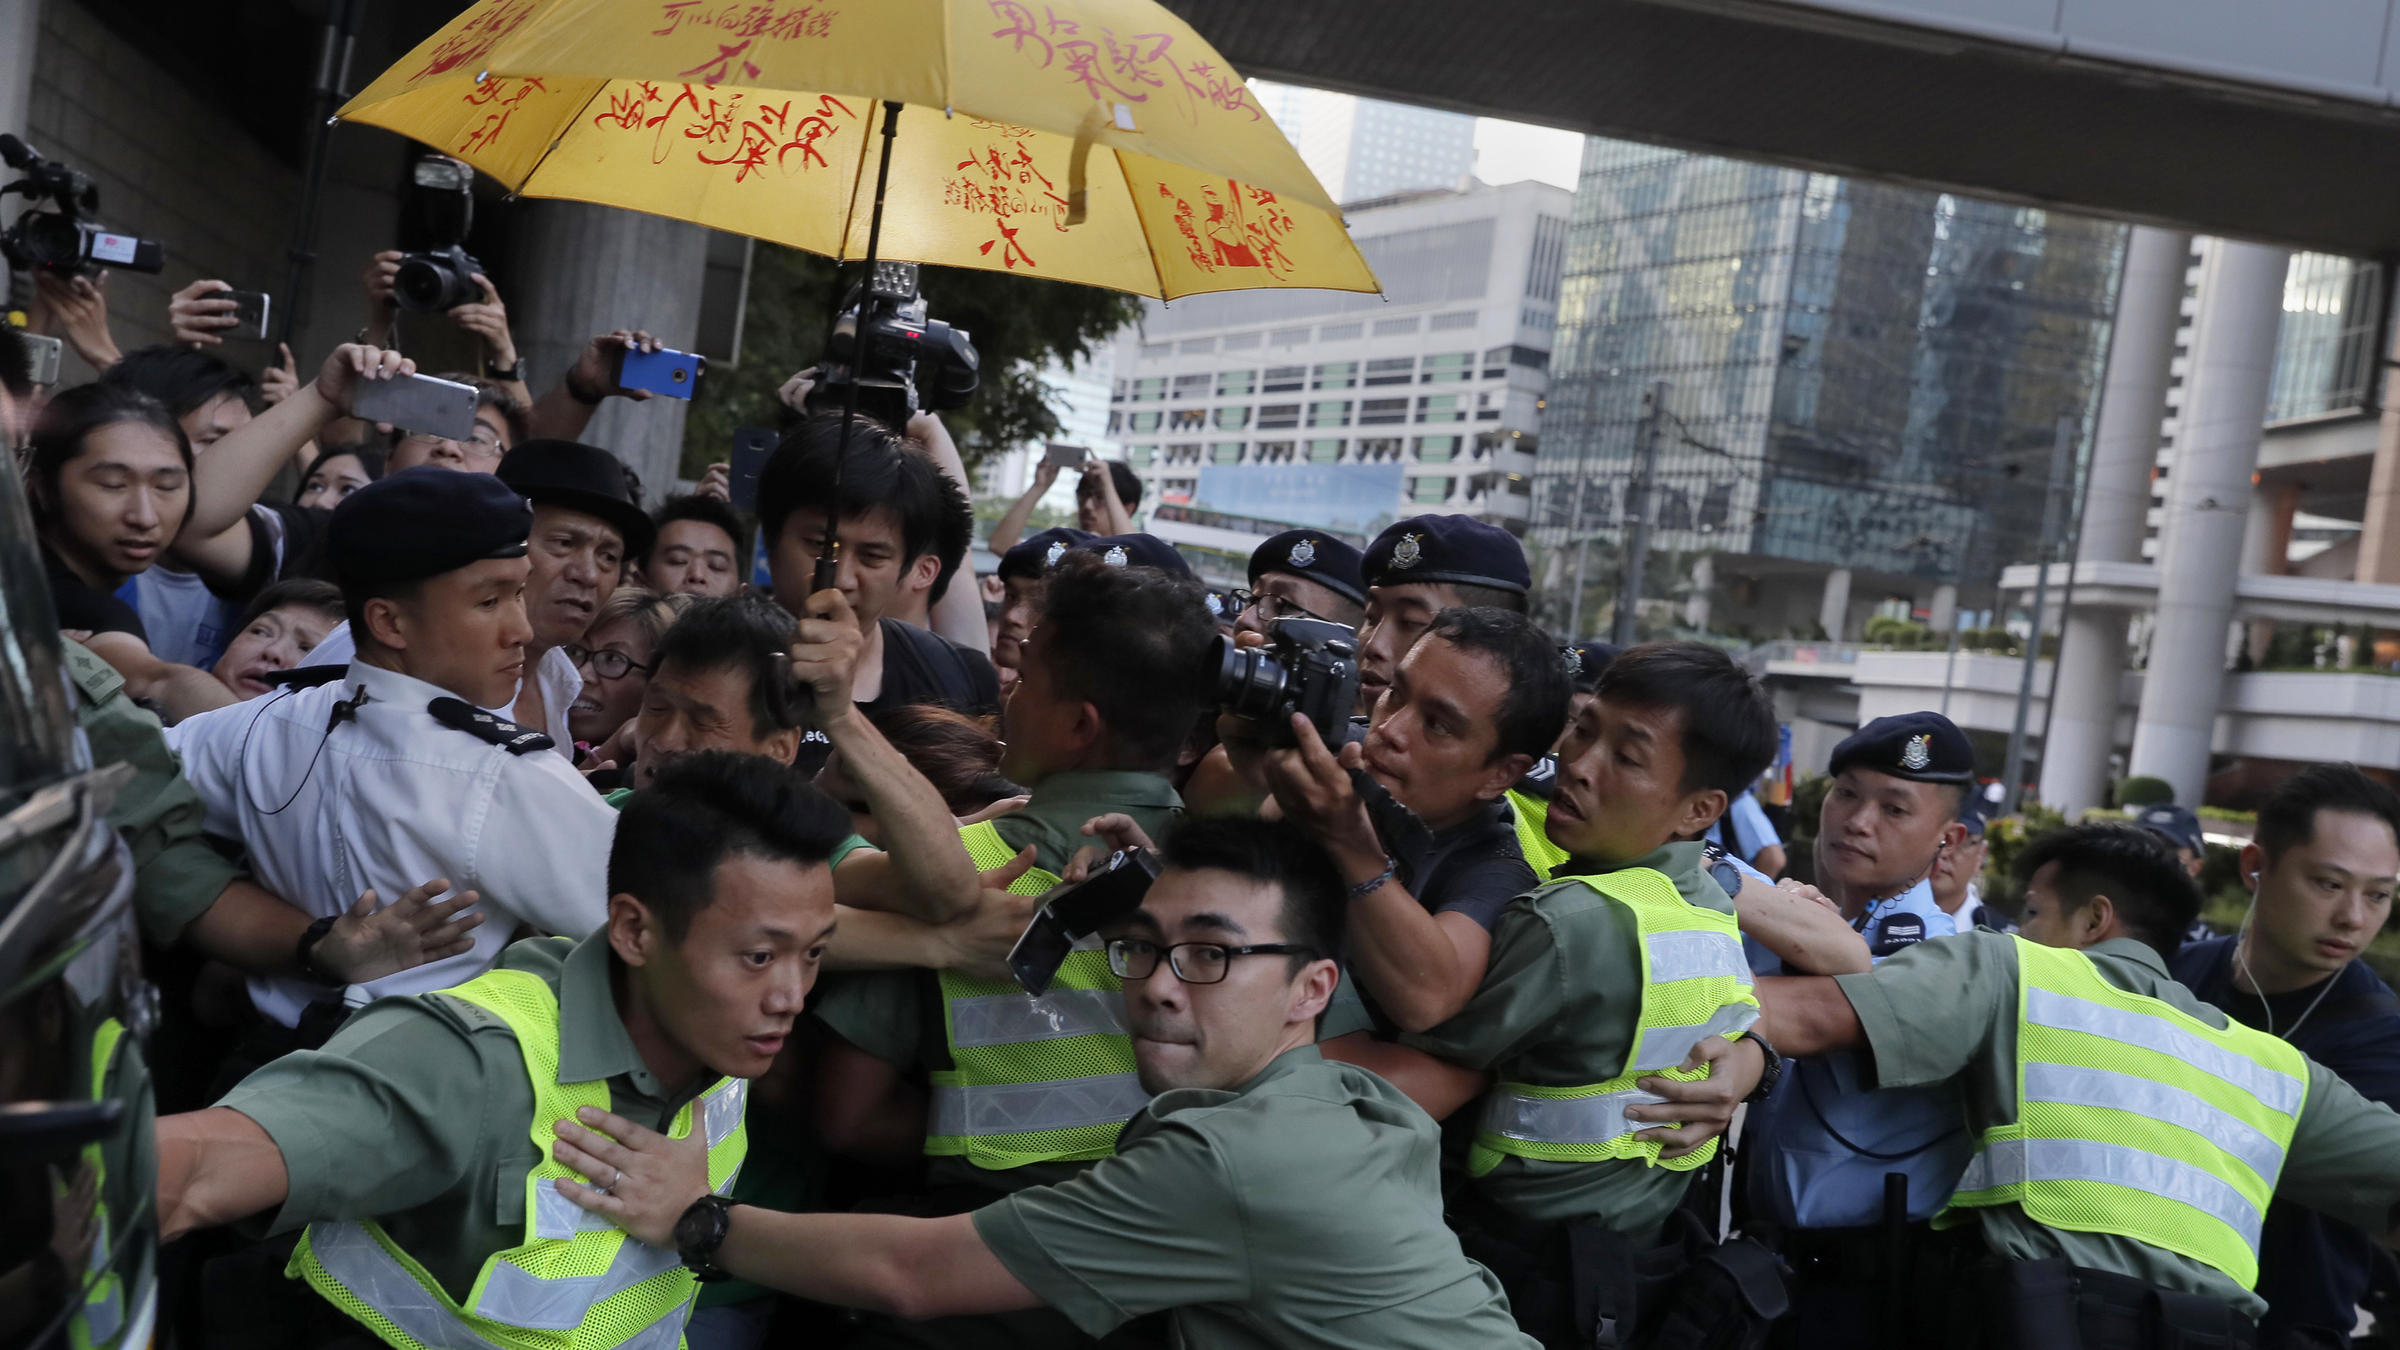 HK Occupy Central student leaders jailed